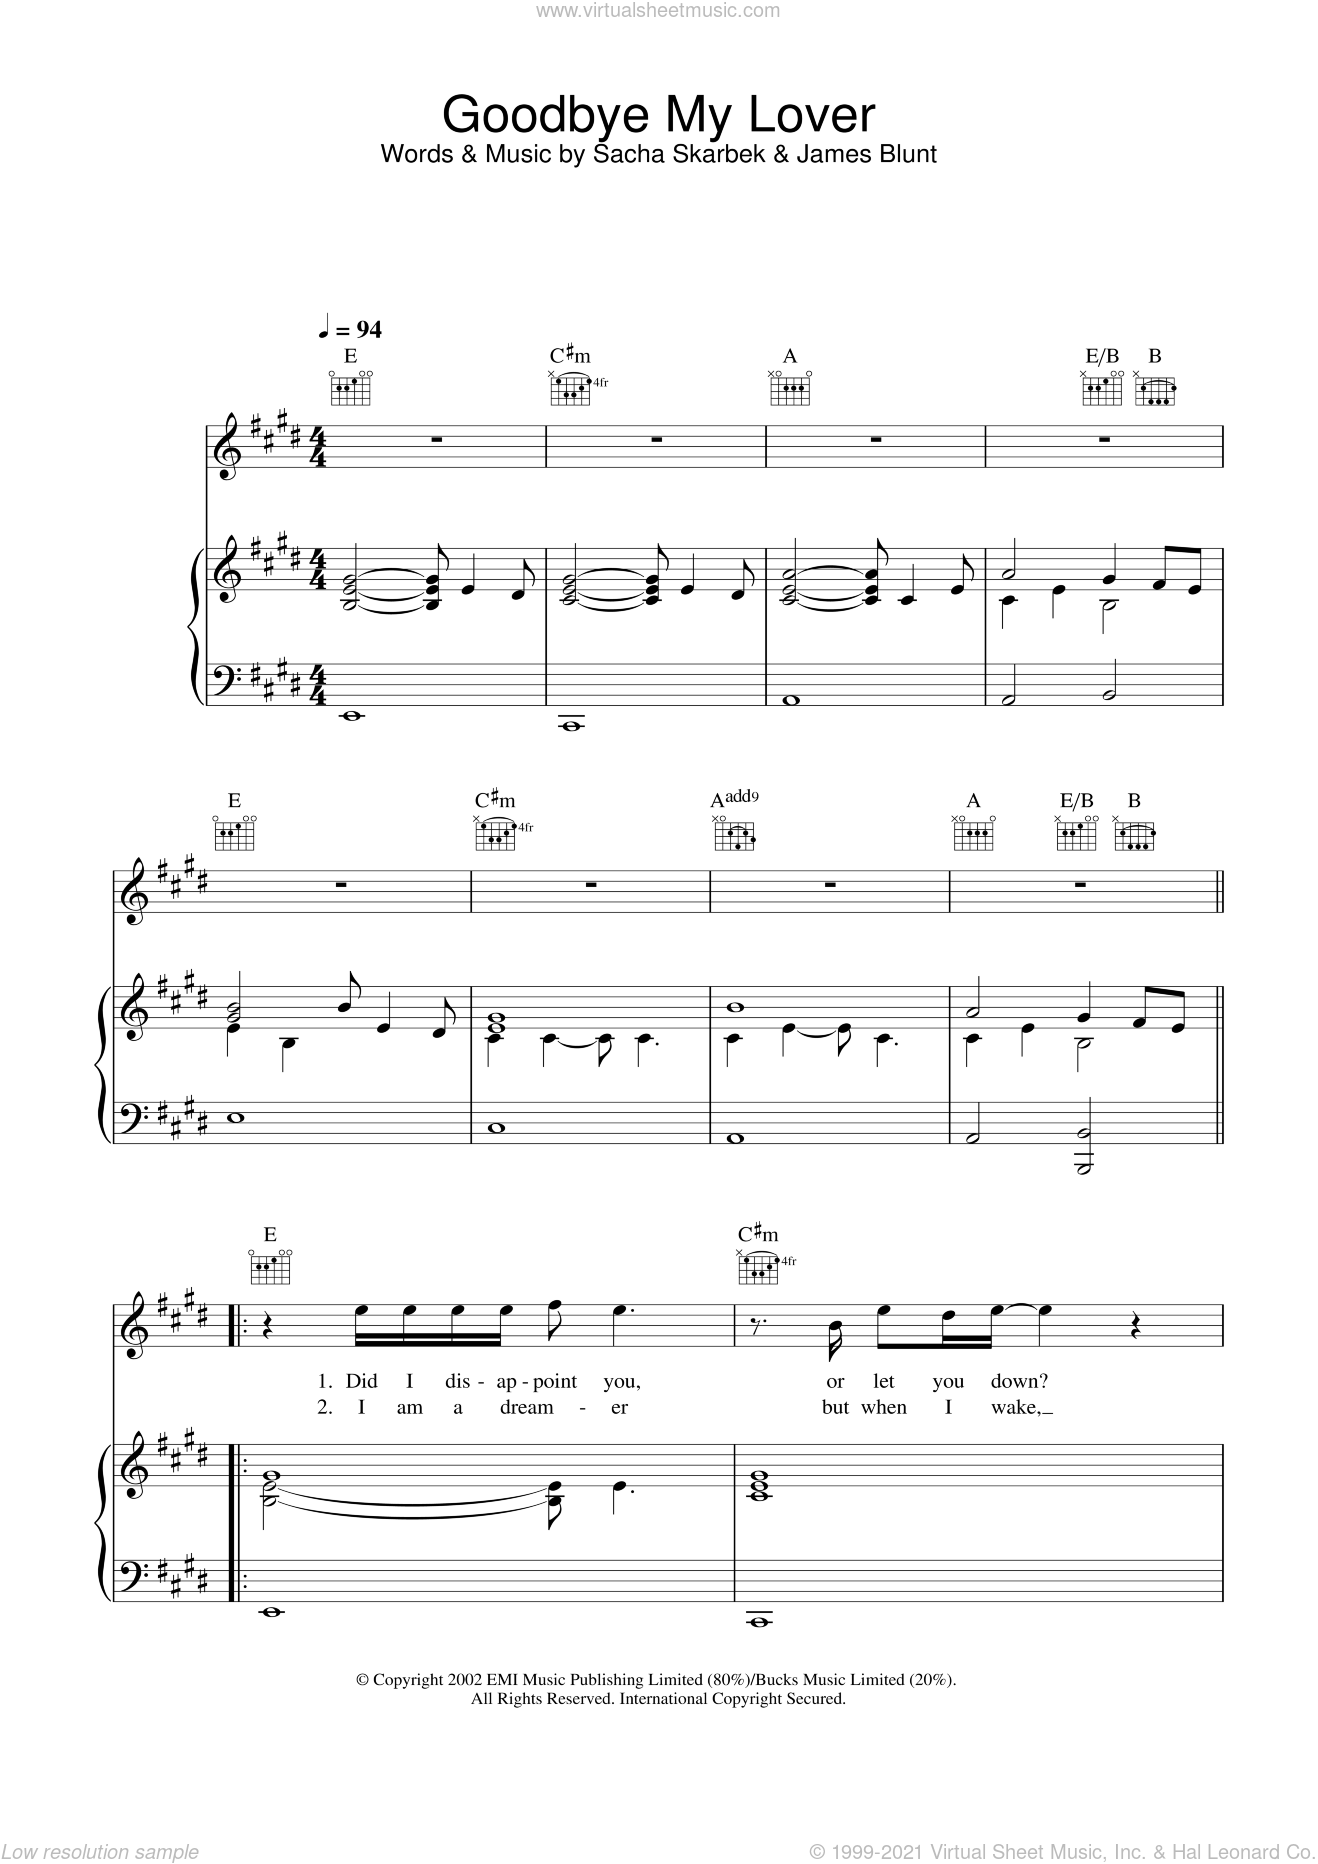 Goodbye My Lover sheet music for voice, piano or guitar by Sacha Skarbek